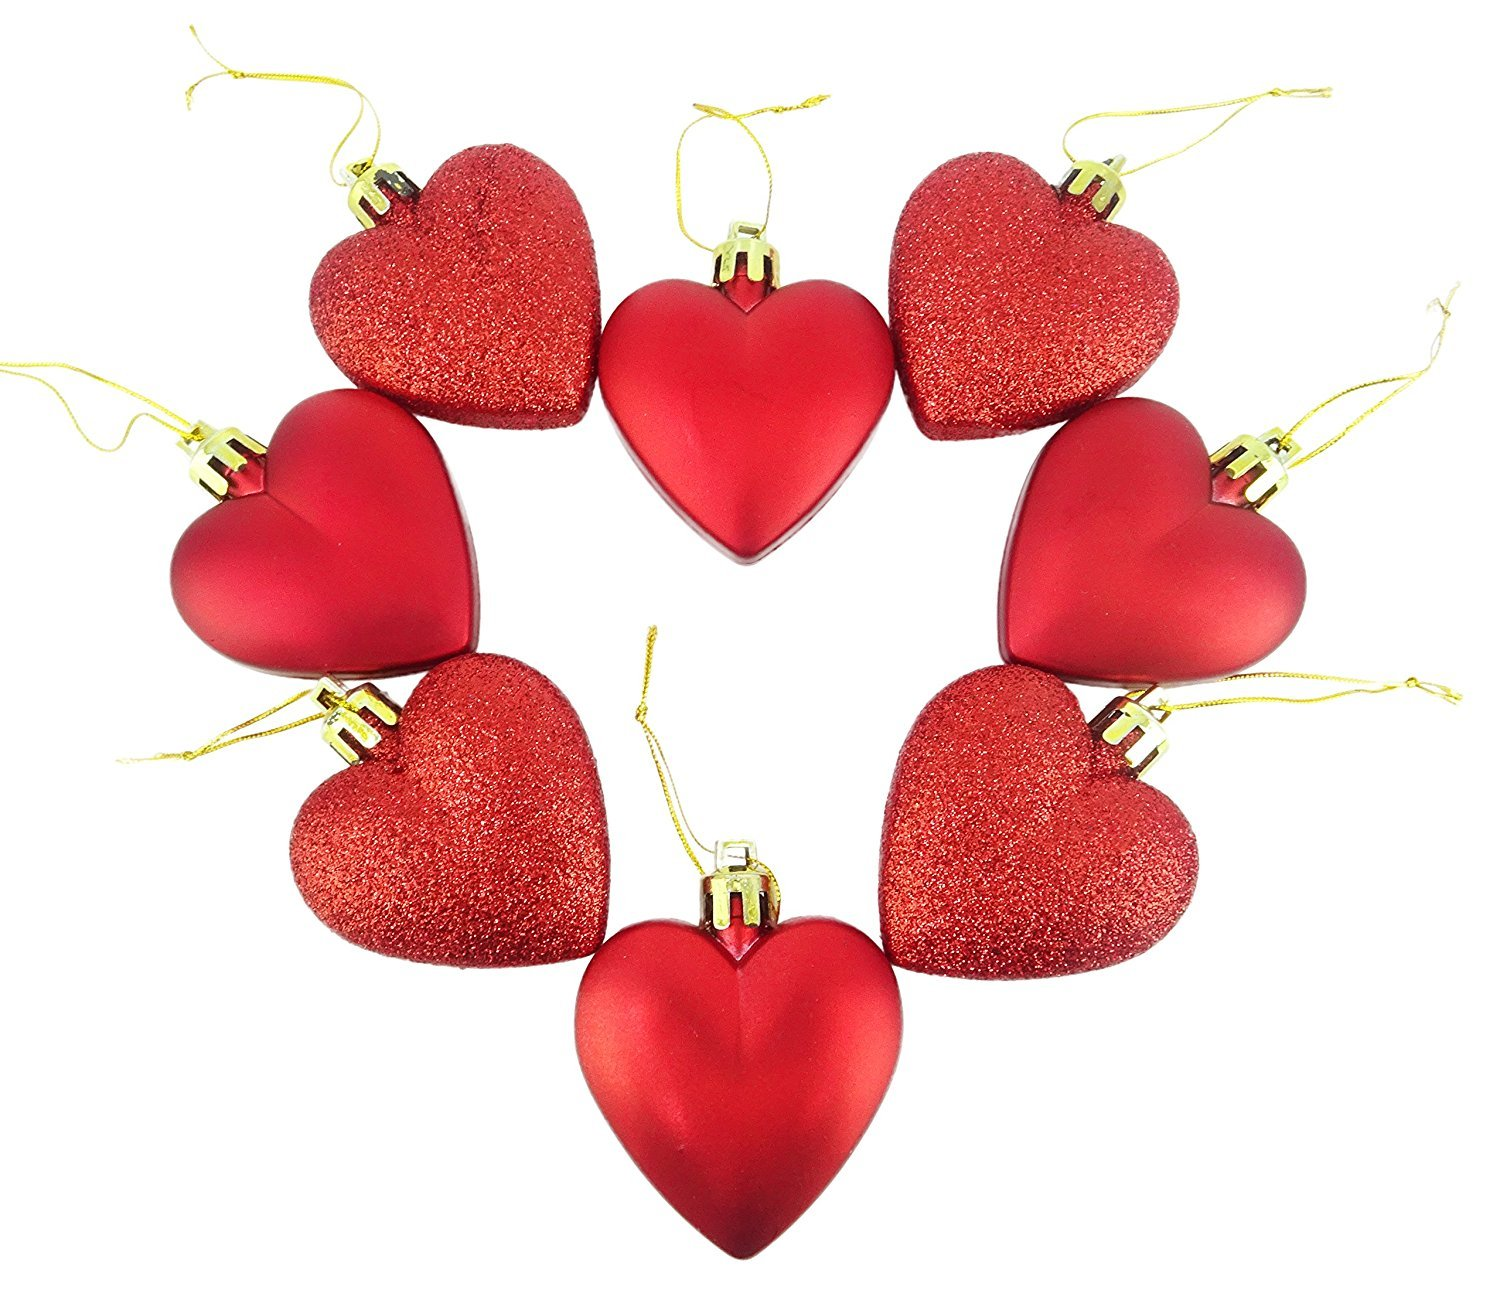 8 x 5cm RED Glitter + Matt Heart Shaped Christmas Tree Baubles CHRISTMASSHOP B00O7TQ7FW